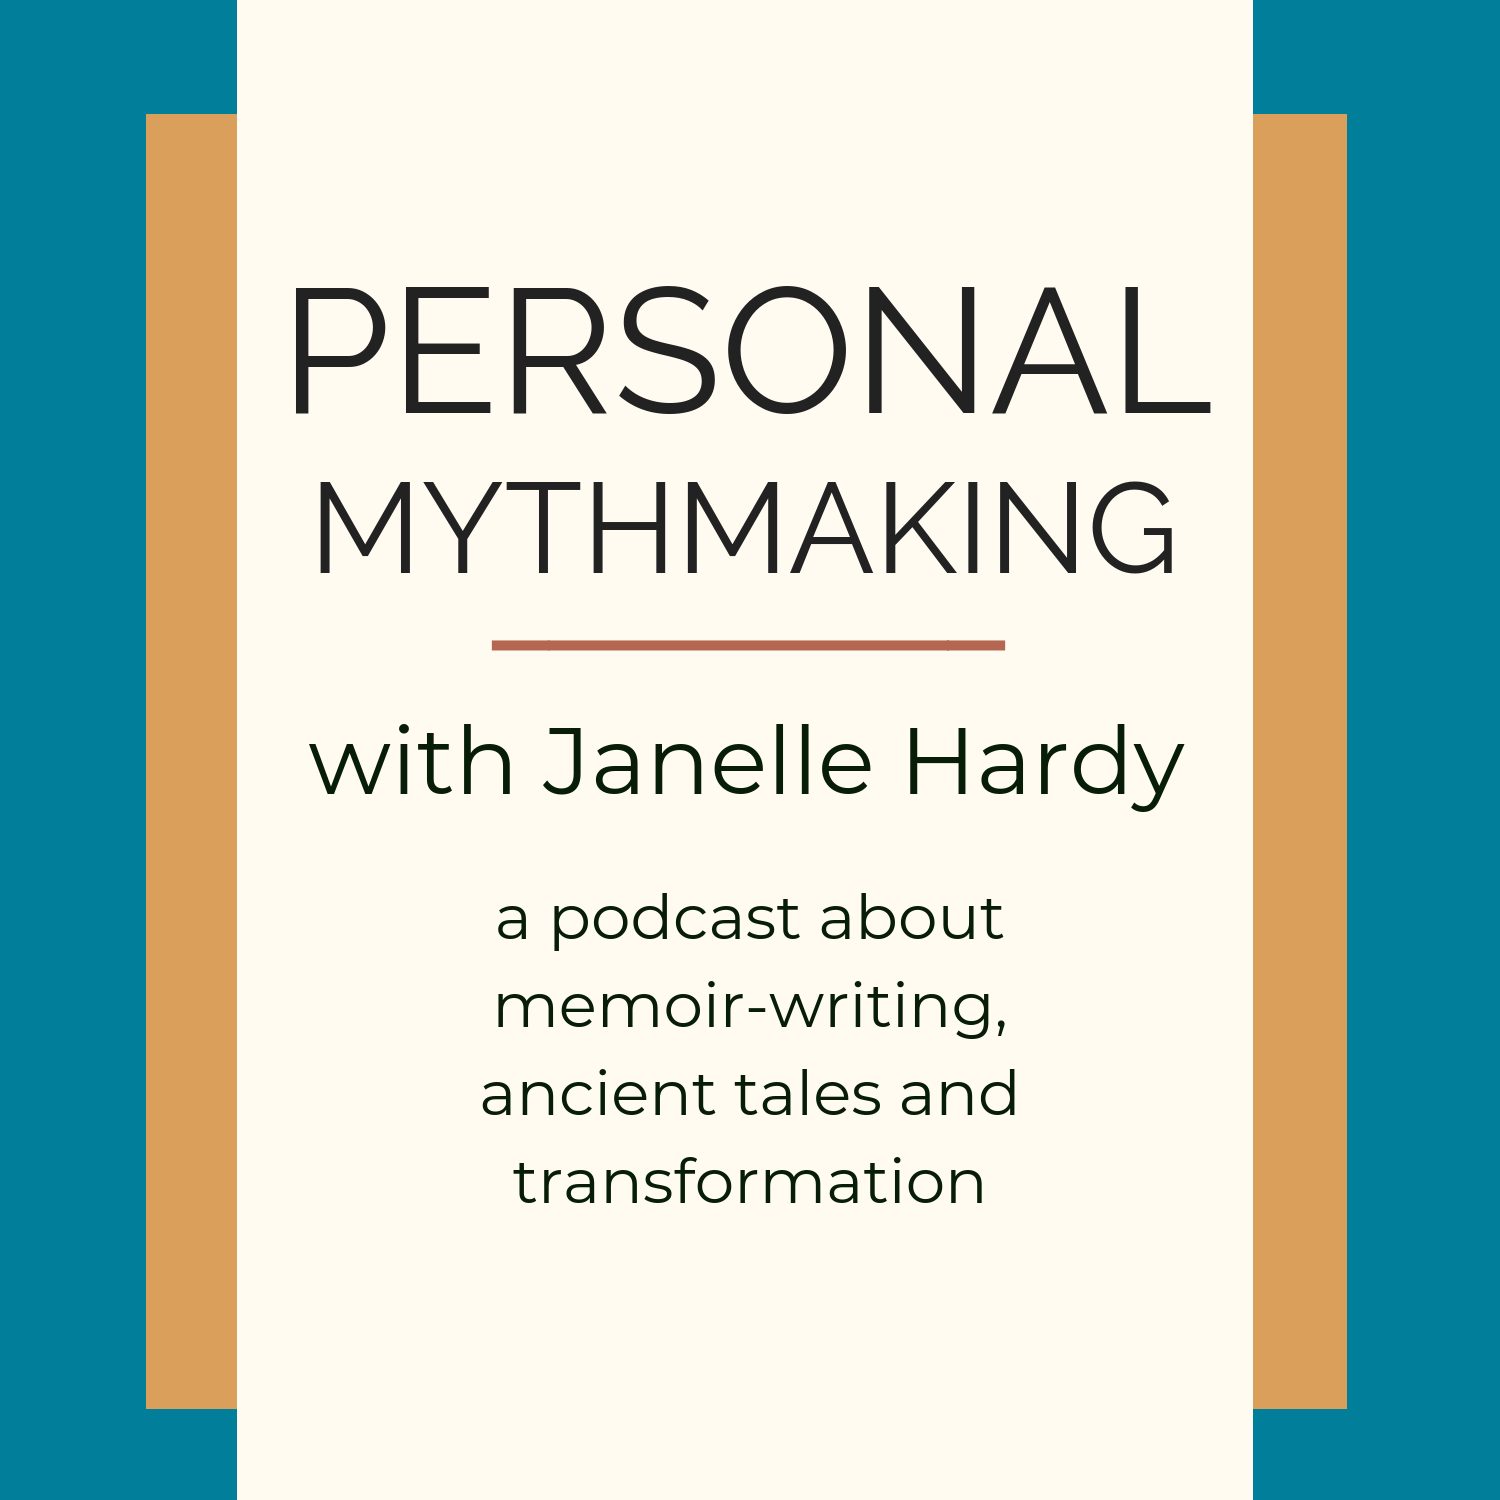 Personal Mythmaking with Janelle Hardy show art